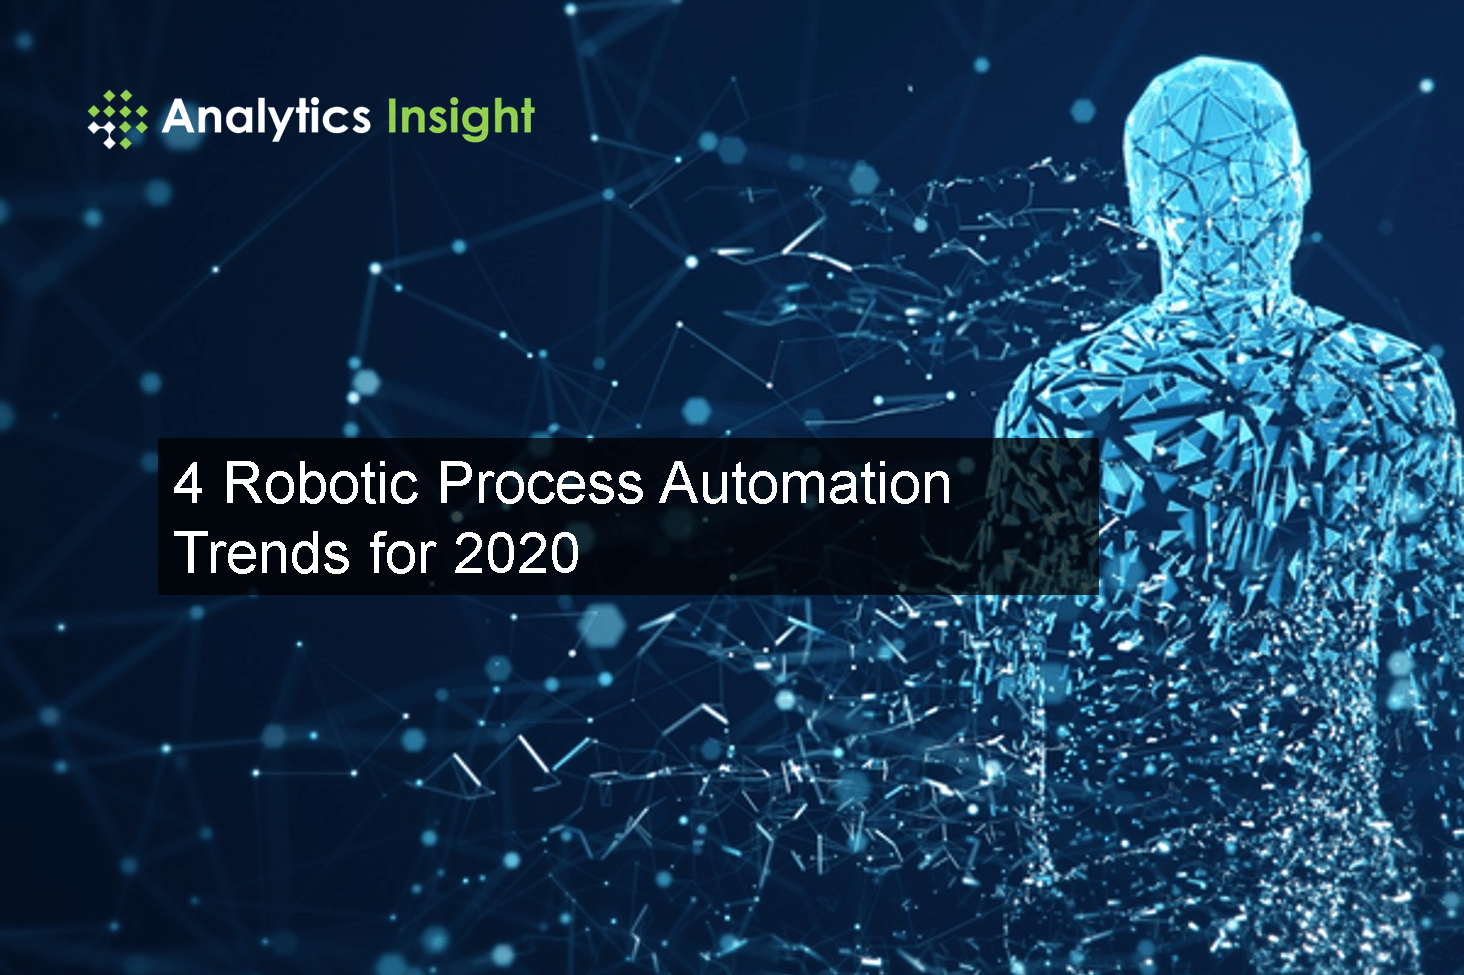 4 Robotic Process Automation Trends For 2020